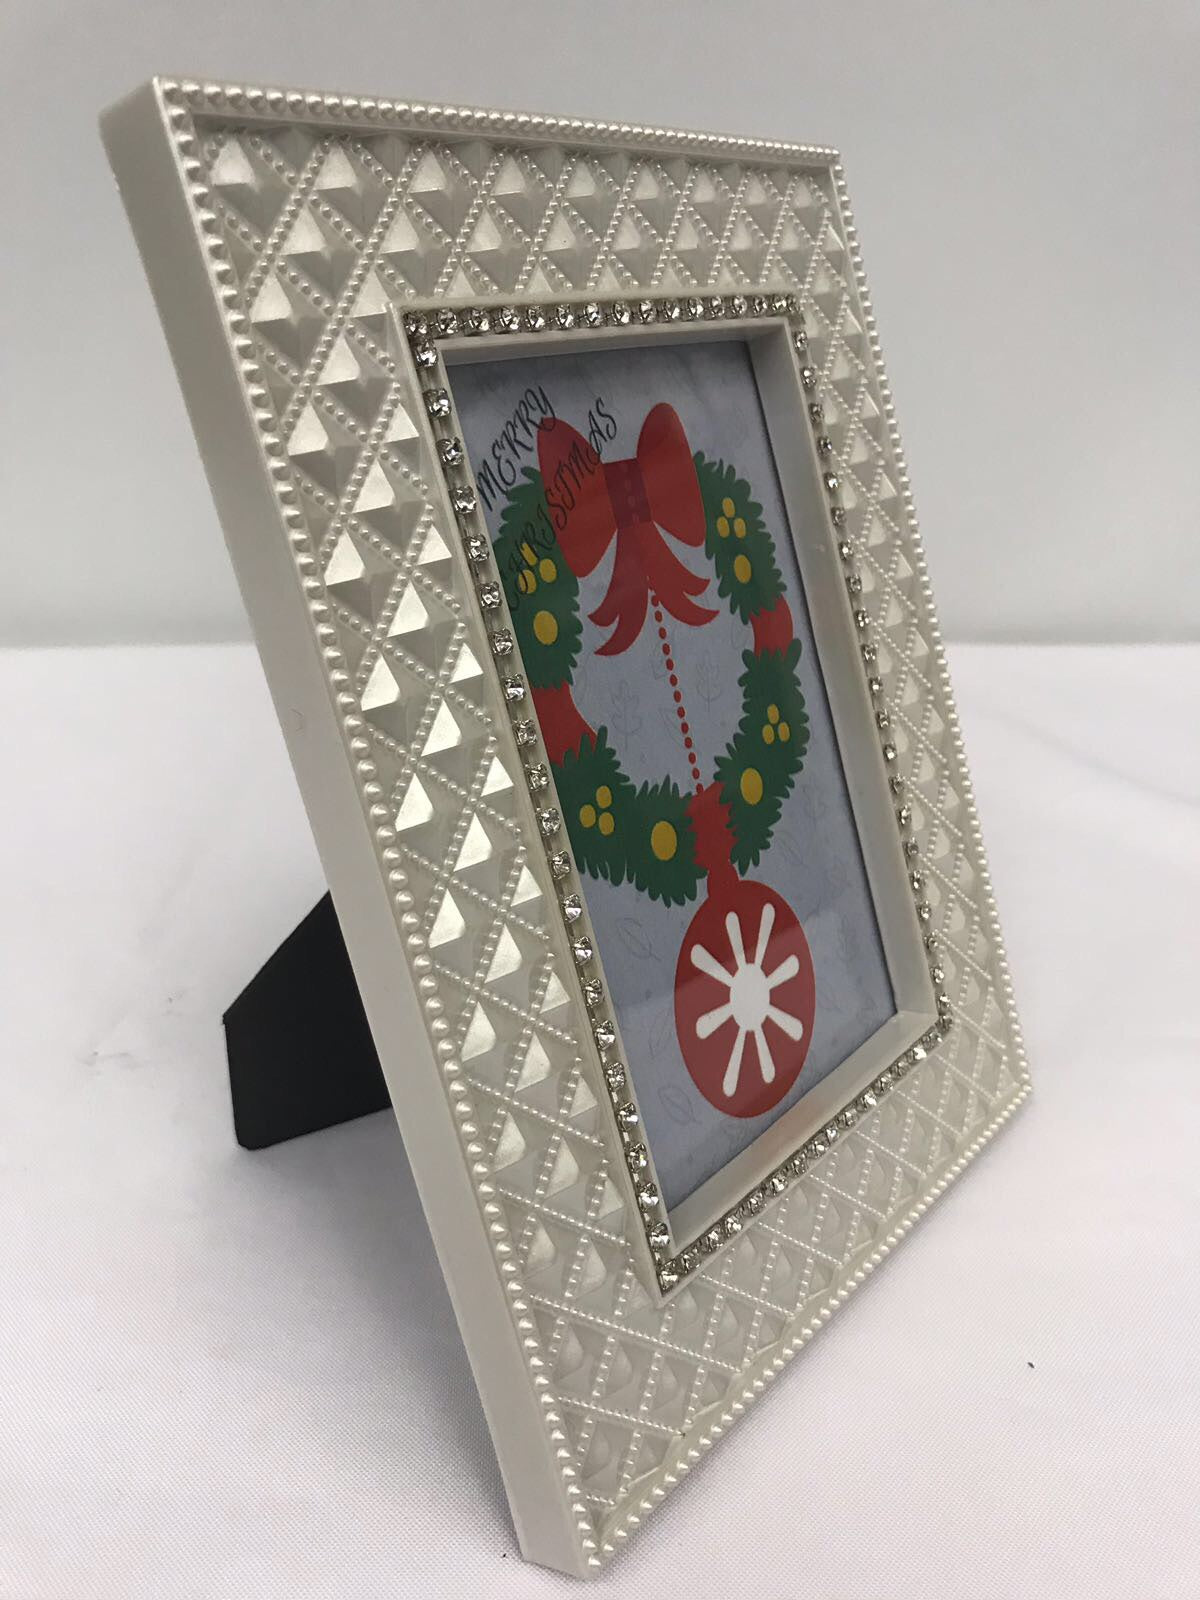 Merry Christmas Wreath DIY Frame